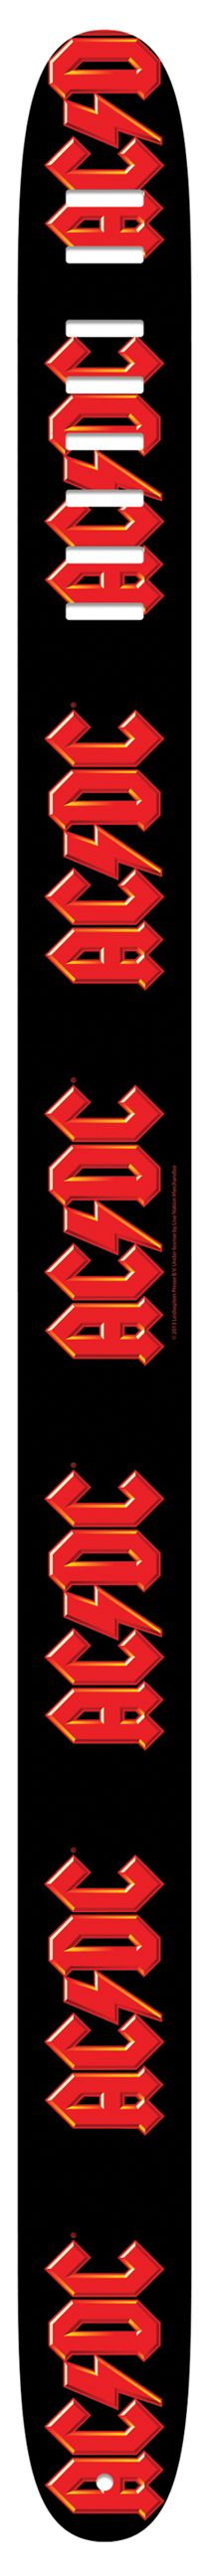 """Official Licensed Product - 2.5"""" ACDC Guitar Strap With High Resolution Imaging- Adjustable from 44.5"""" to 53""""  Made in Canada"""